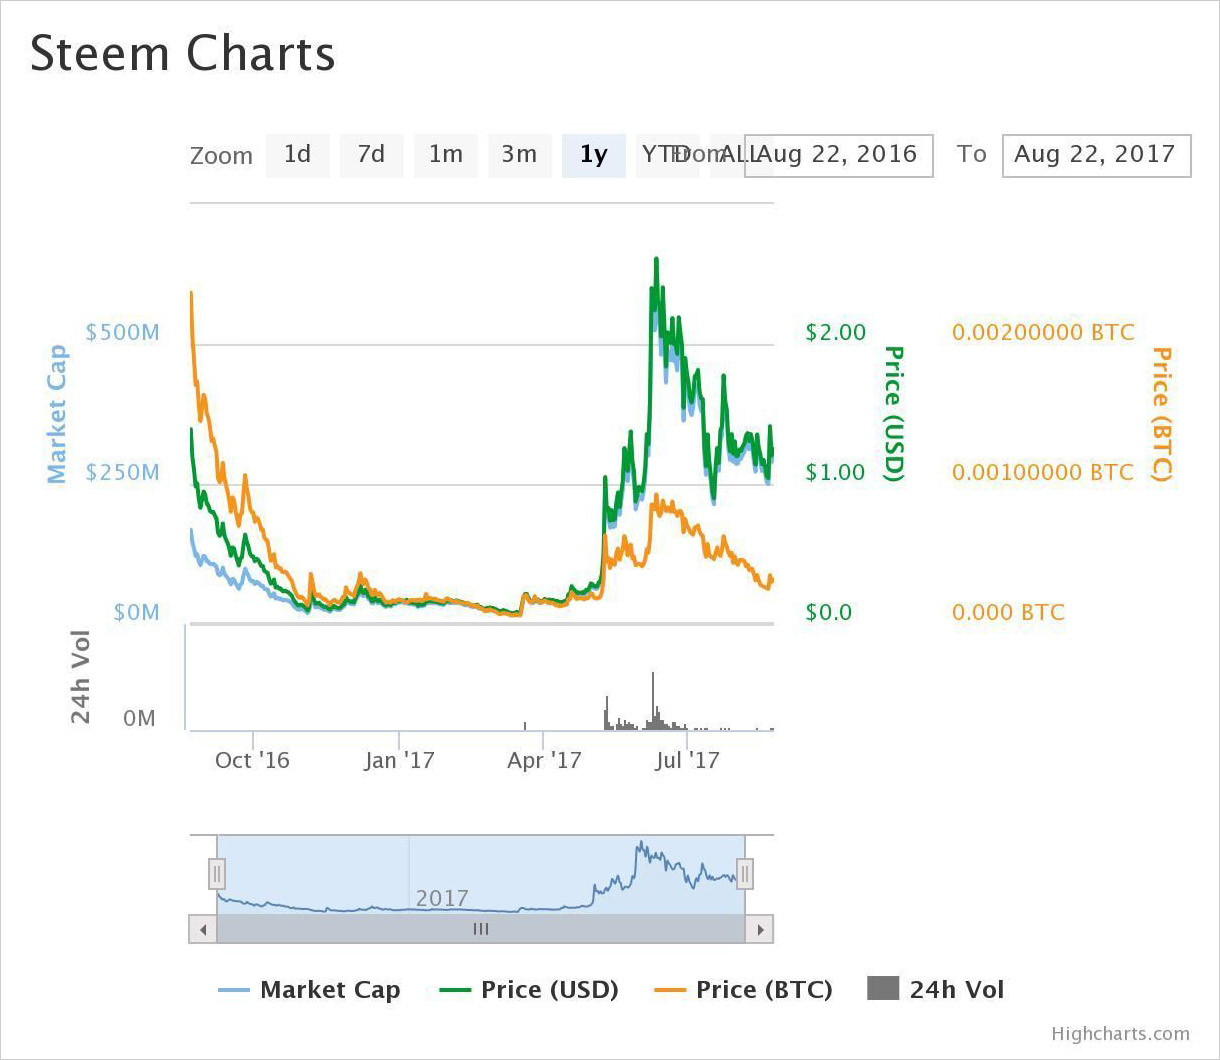 1-year price chart of Steem